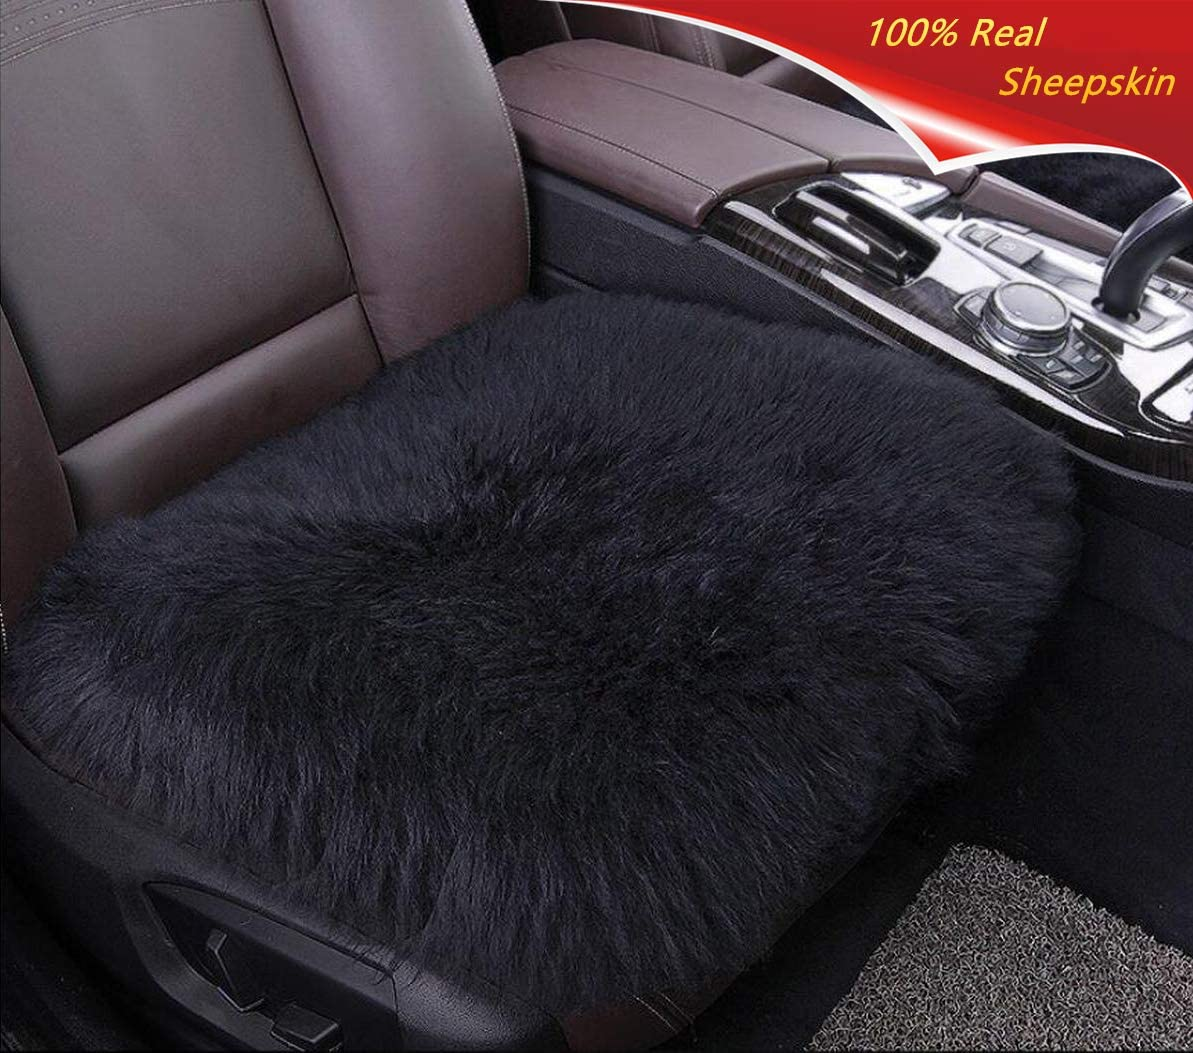 Universal Fit for Cars Driver Seat Office Chair Gray Big Ant Sheepskin Seat Covers Sleek Design Authentic Australian Full Size Car Seat Pad Soft Long Wool Warm Seat Cushion Cover Winter Protector